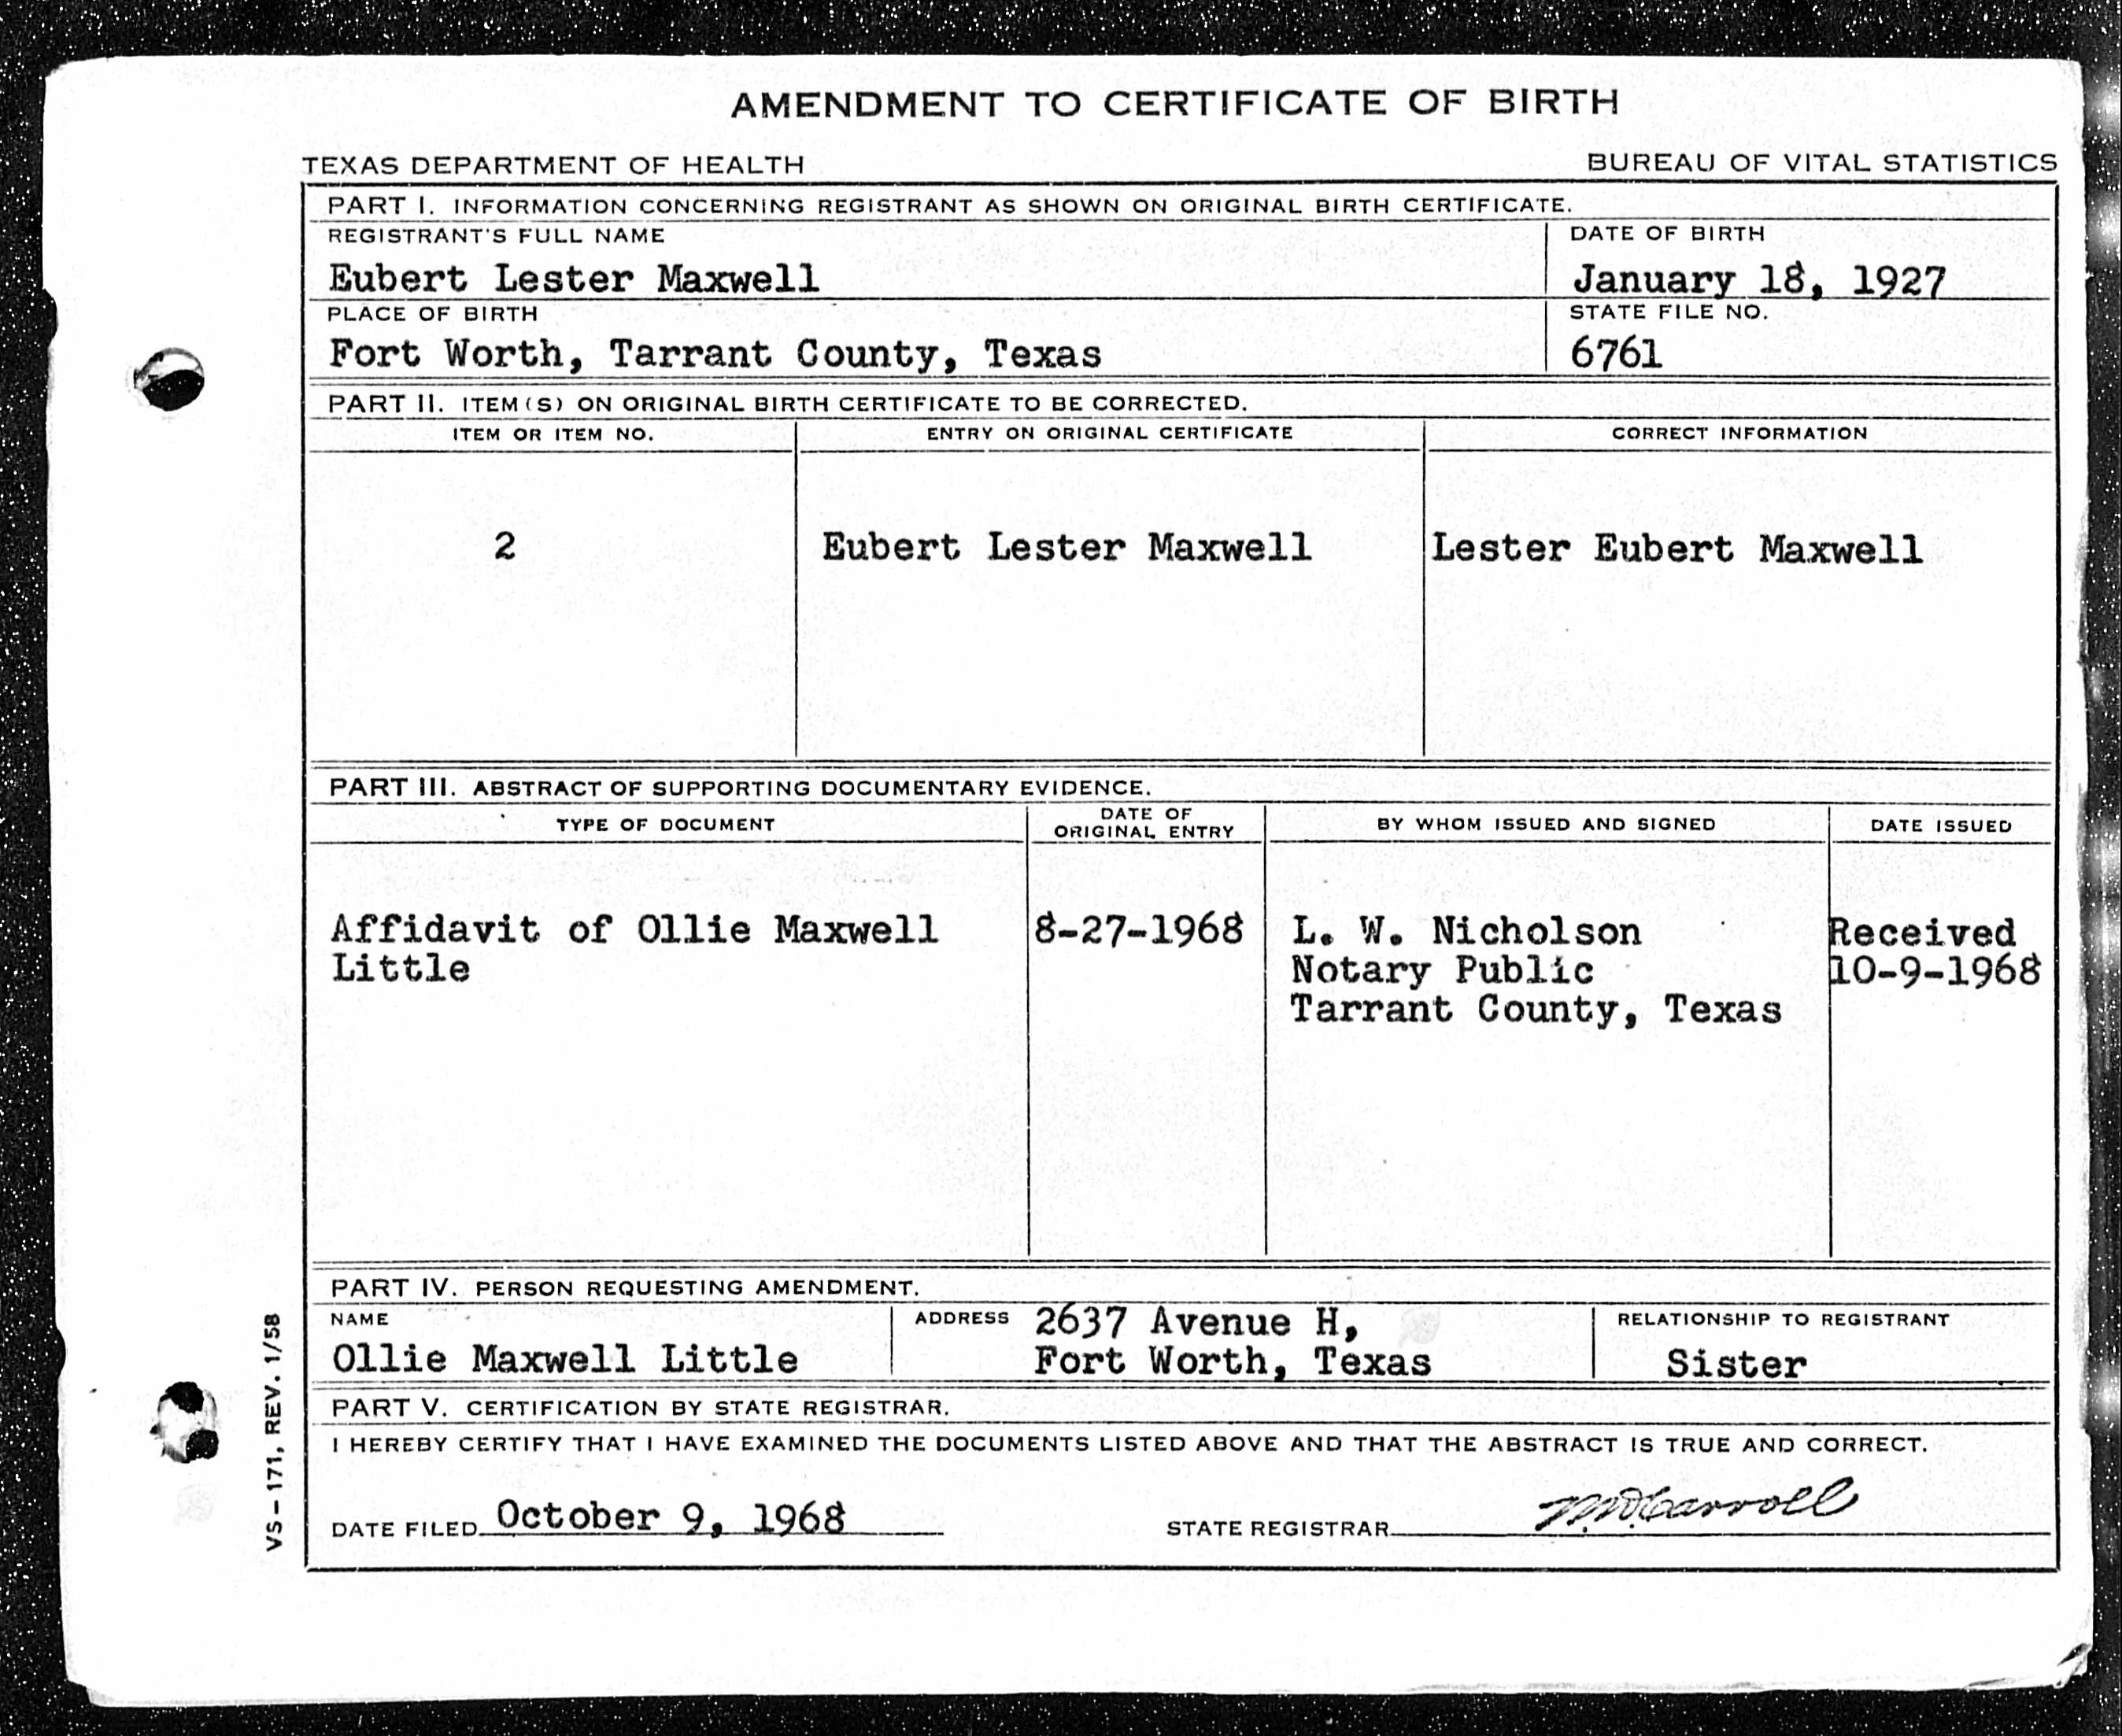 Vistoso Tarrant County Birth Certificate Fotos Para La Aplicacin